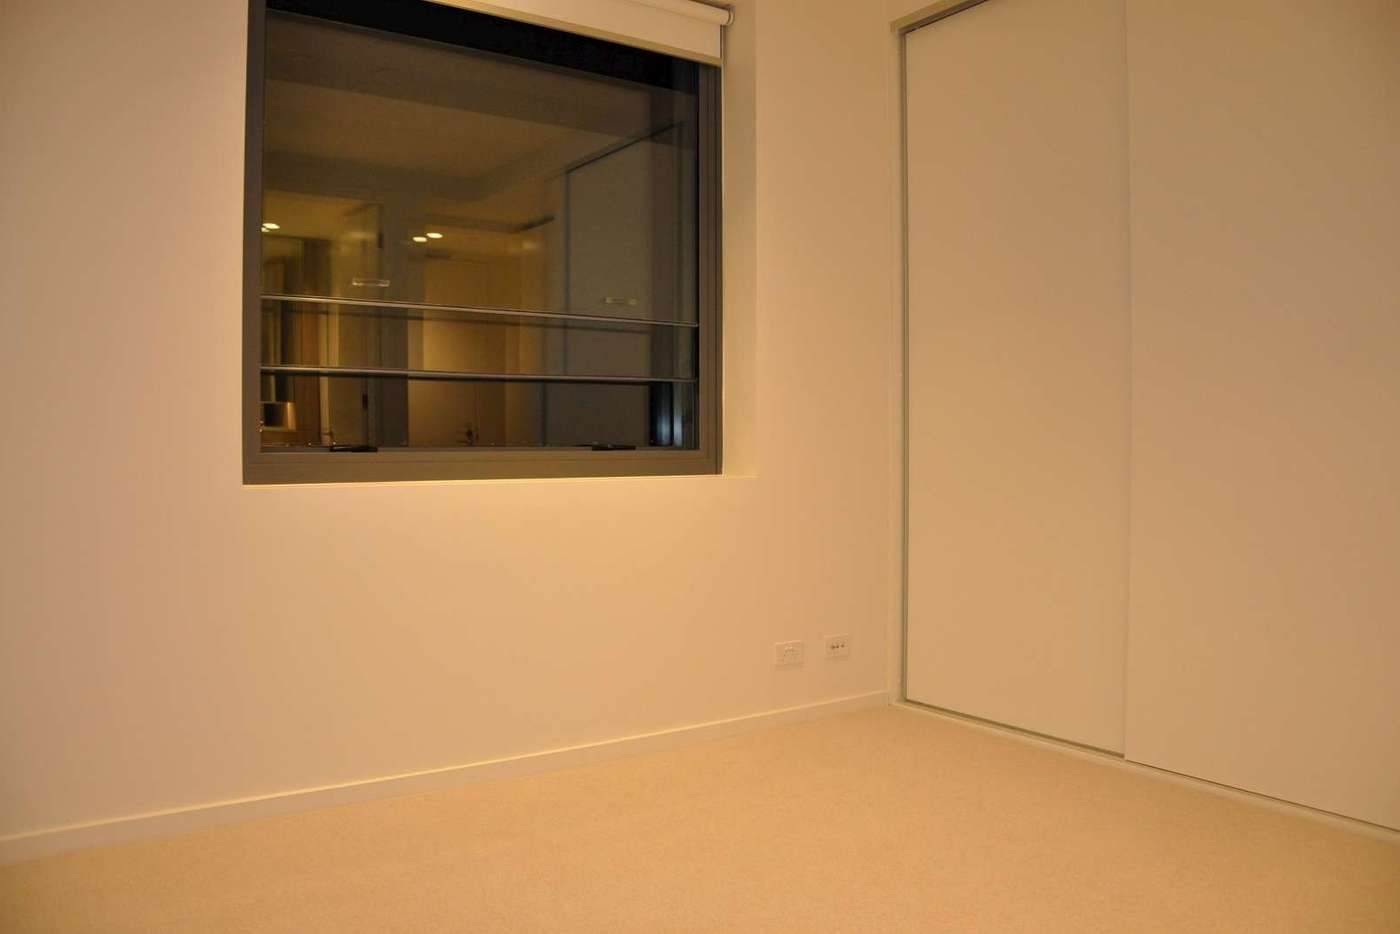 Seventh view of Homely apartment listing, 1005/8C Evergreen Mews, Armadale VIC 3143